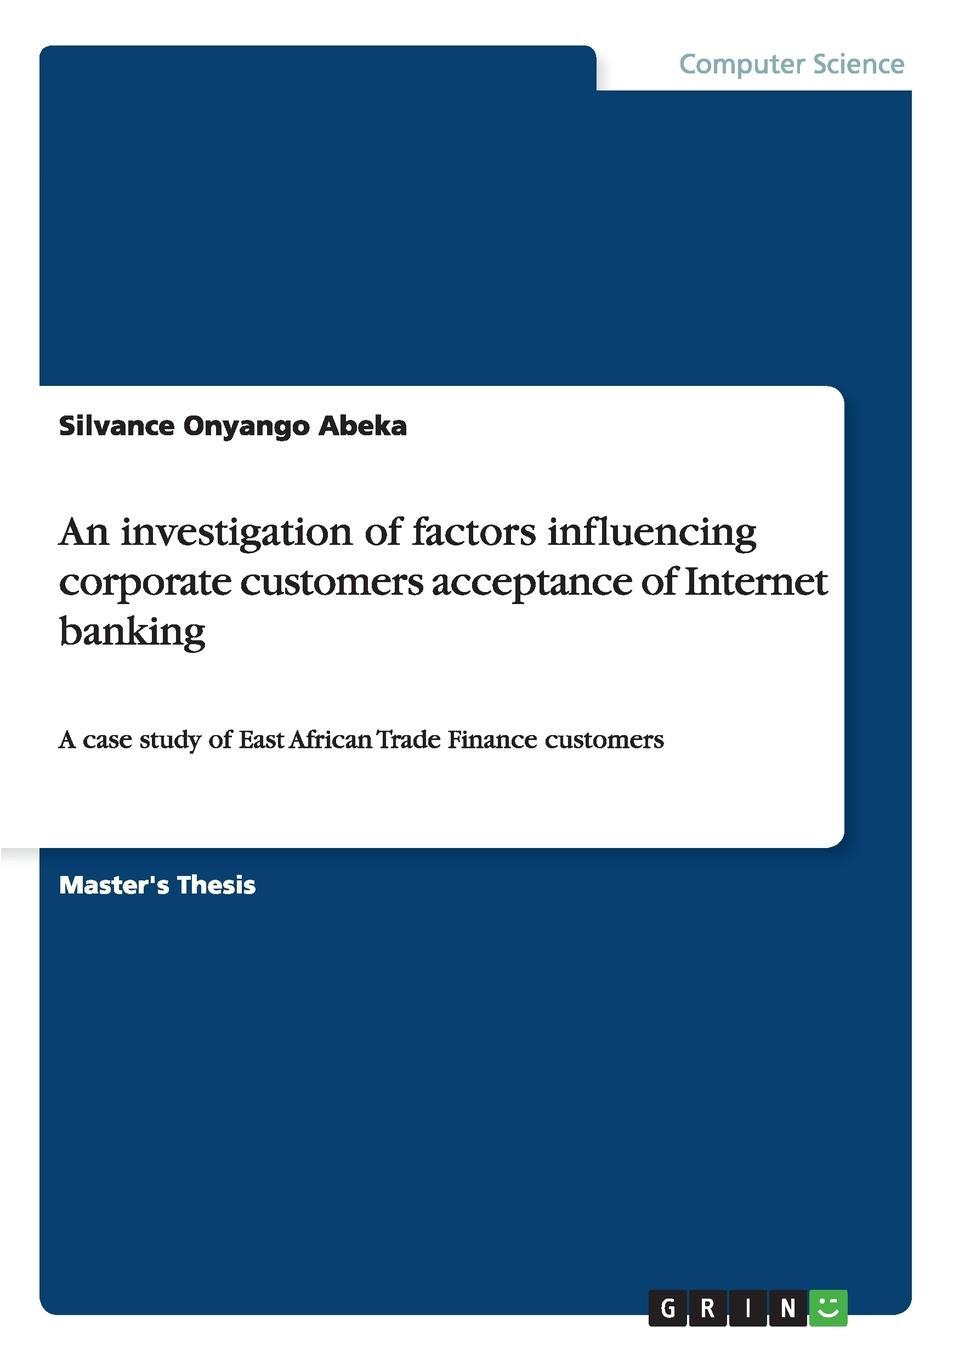 Silvance Onyango Abeka An investigation of factors influencing corporate customers acceptance of Internet banking leonardo to the internet